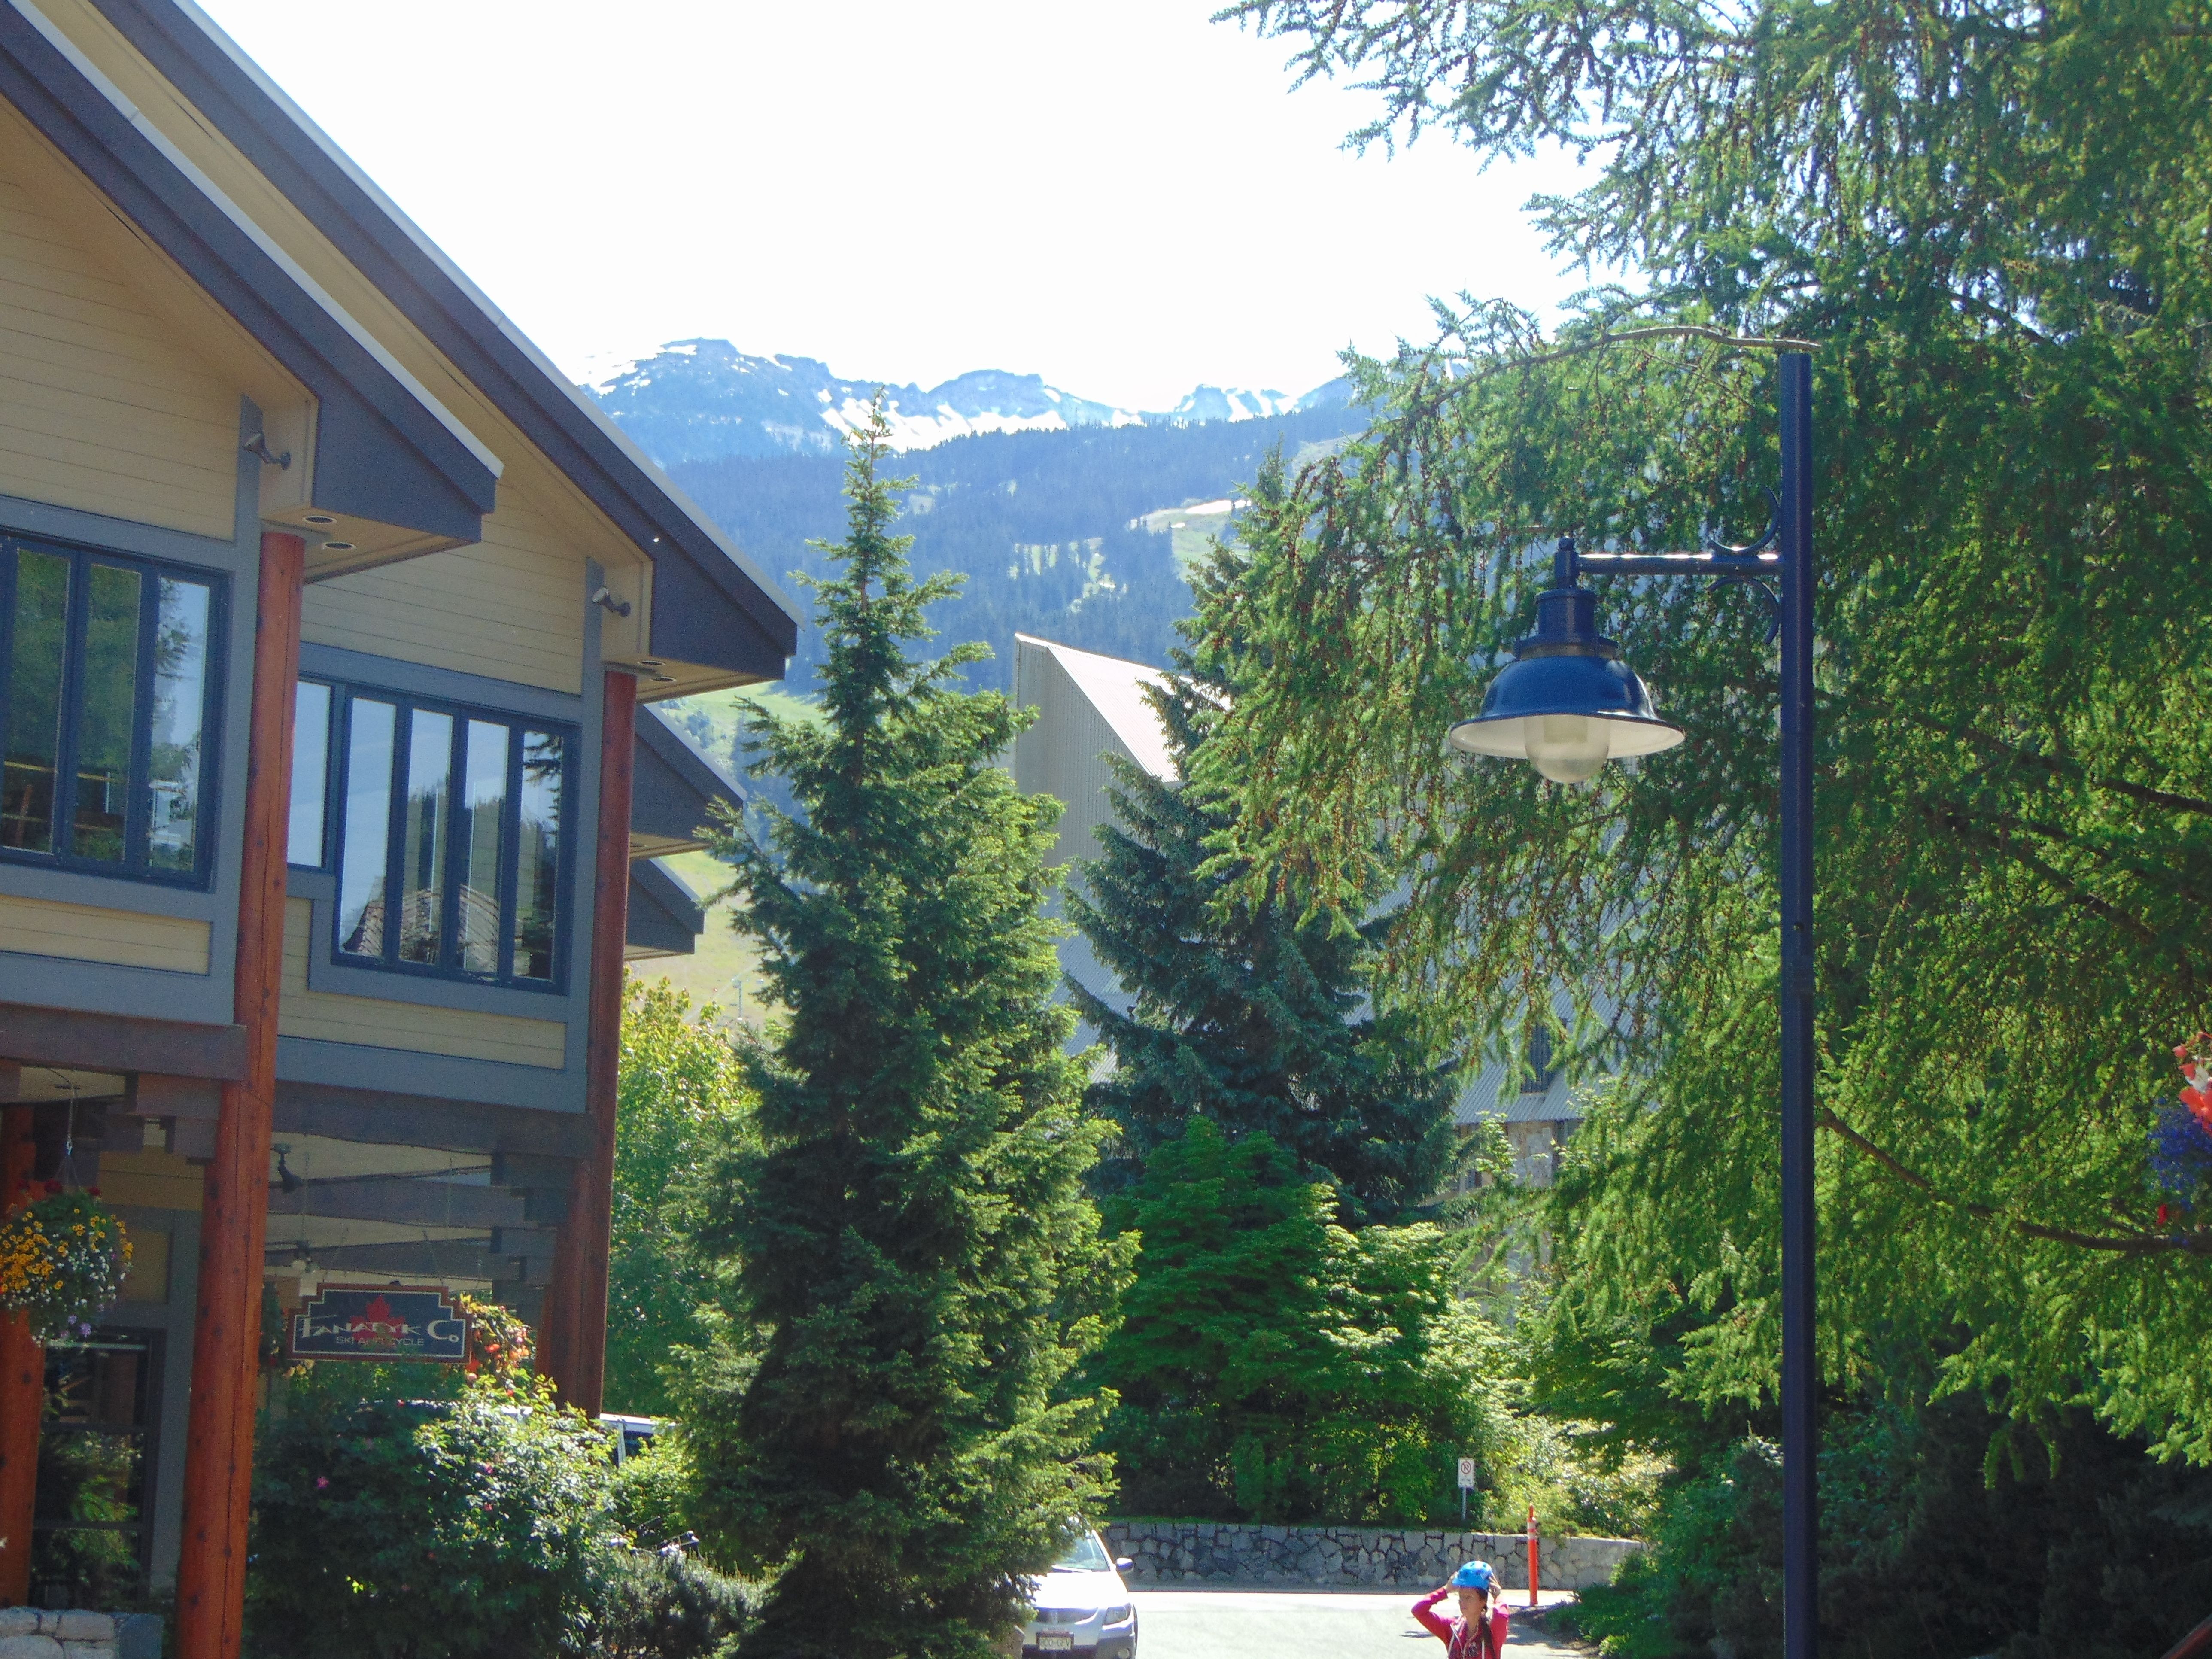 Whistler, BC - Canada  #whistler #canada #britshcolumbia #travel #trip #beautiful #city #village